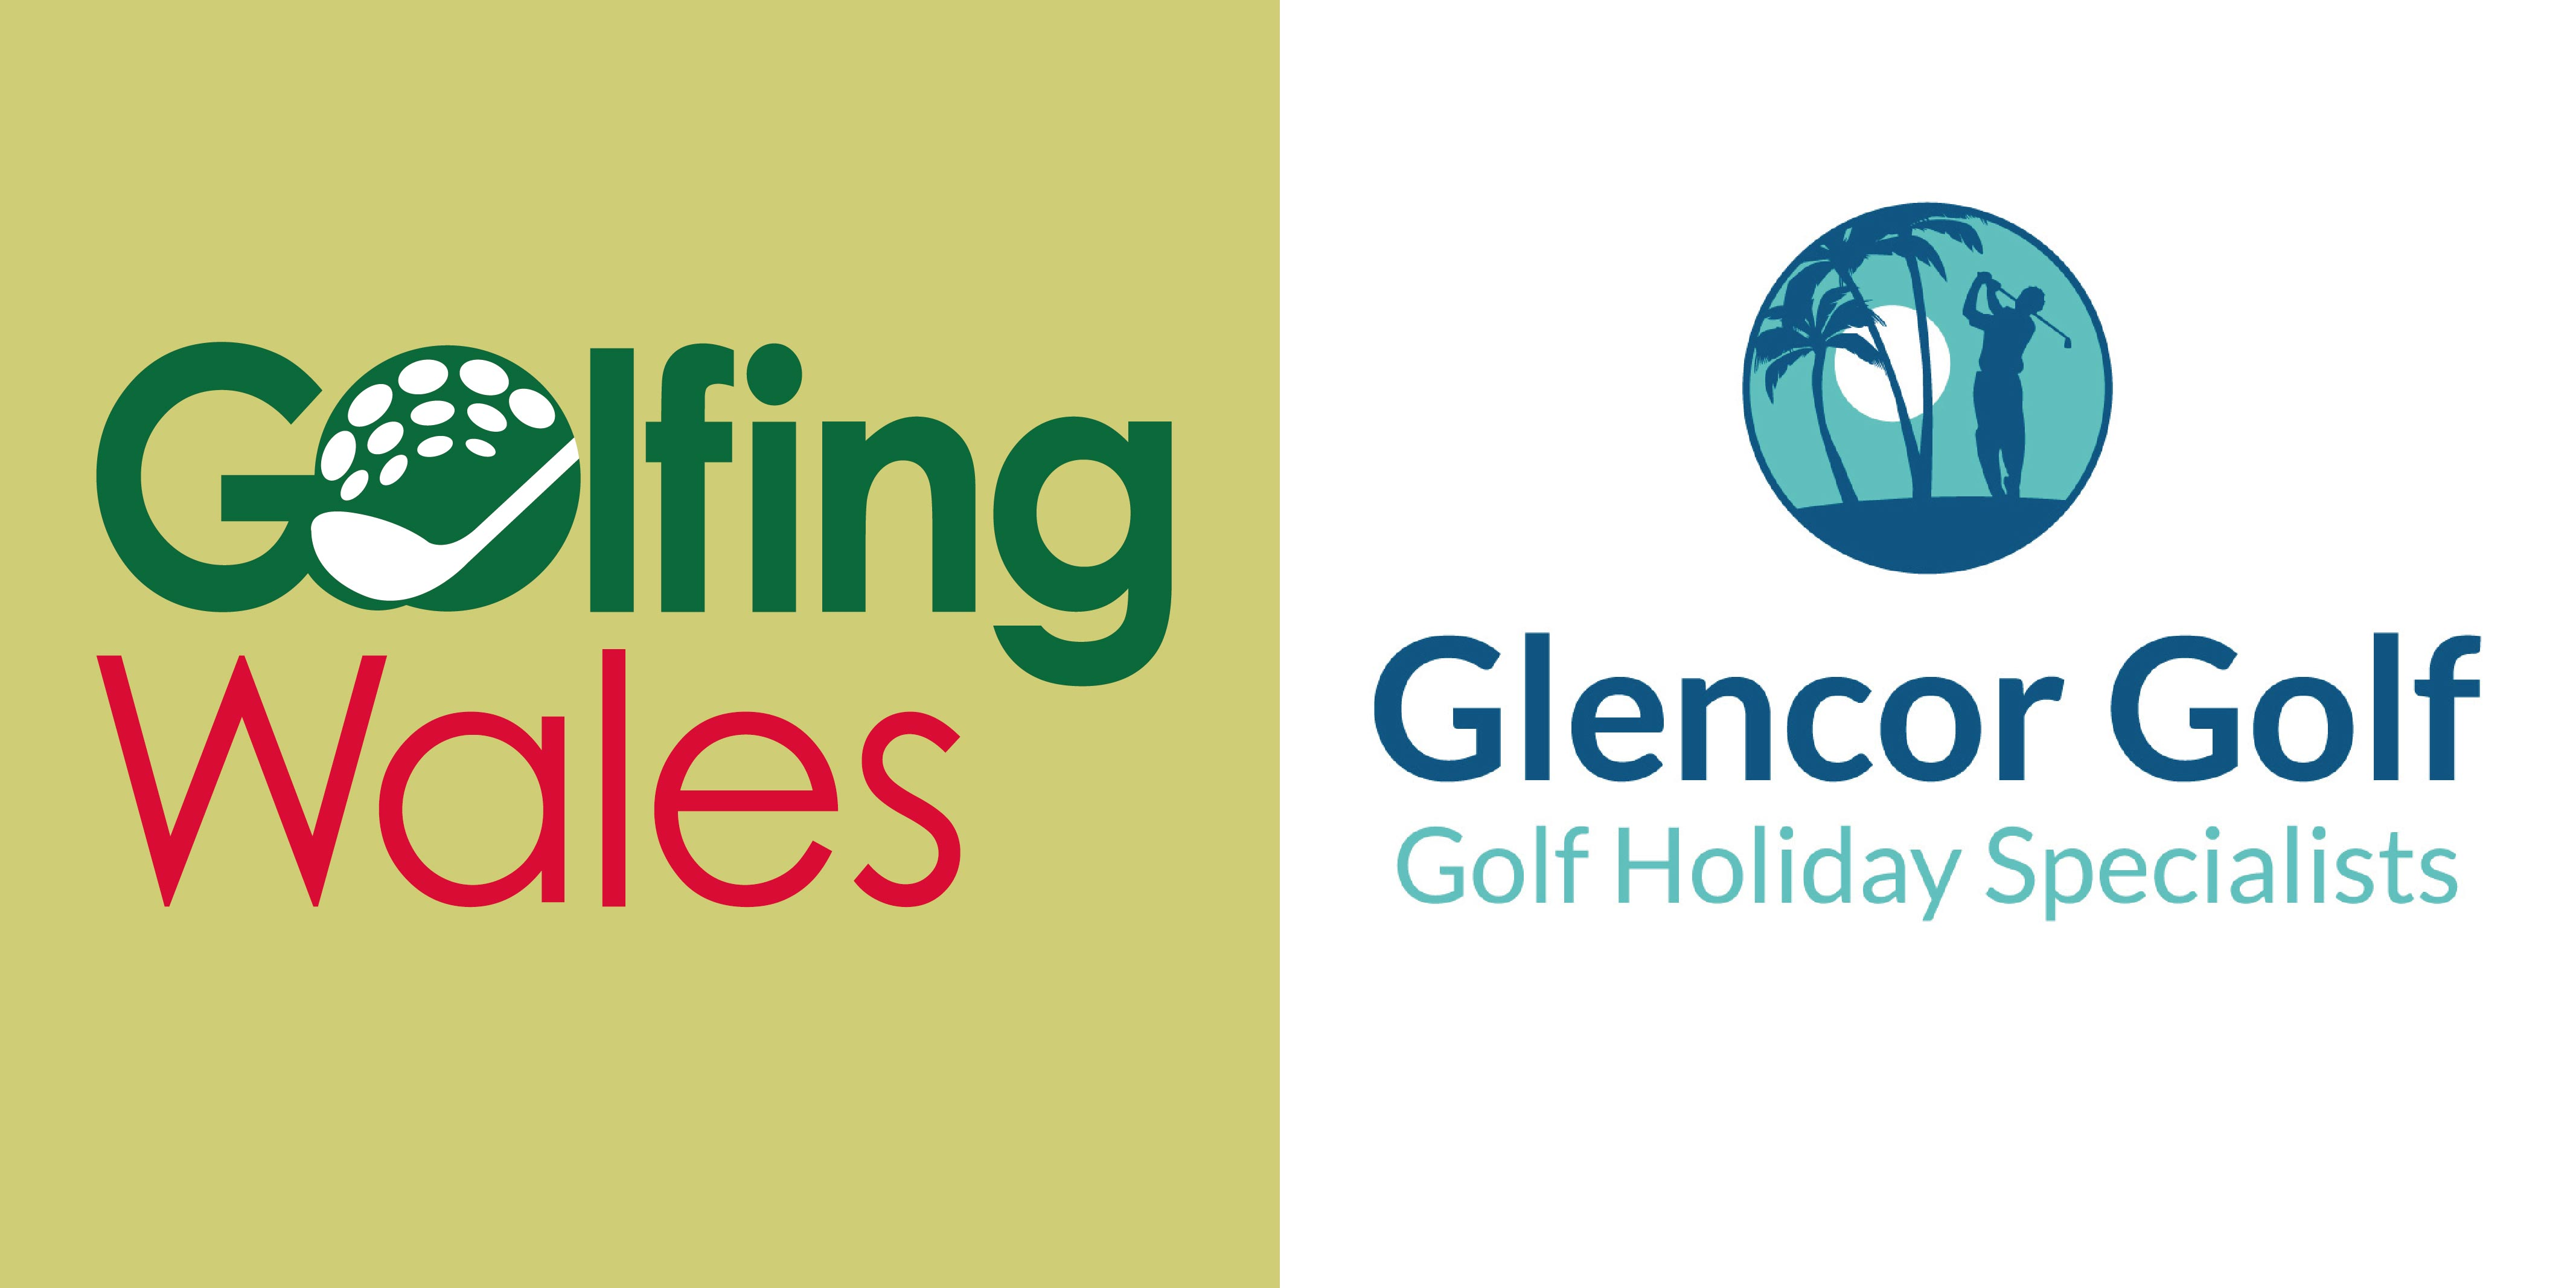 Golfing Wales signs a long-term partnership agreement with Glencor Golf